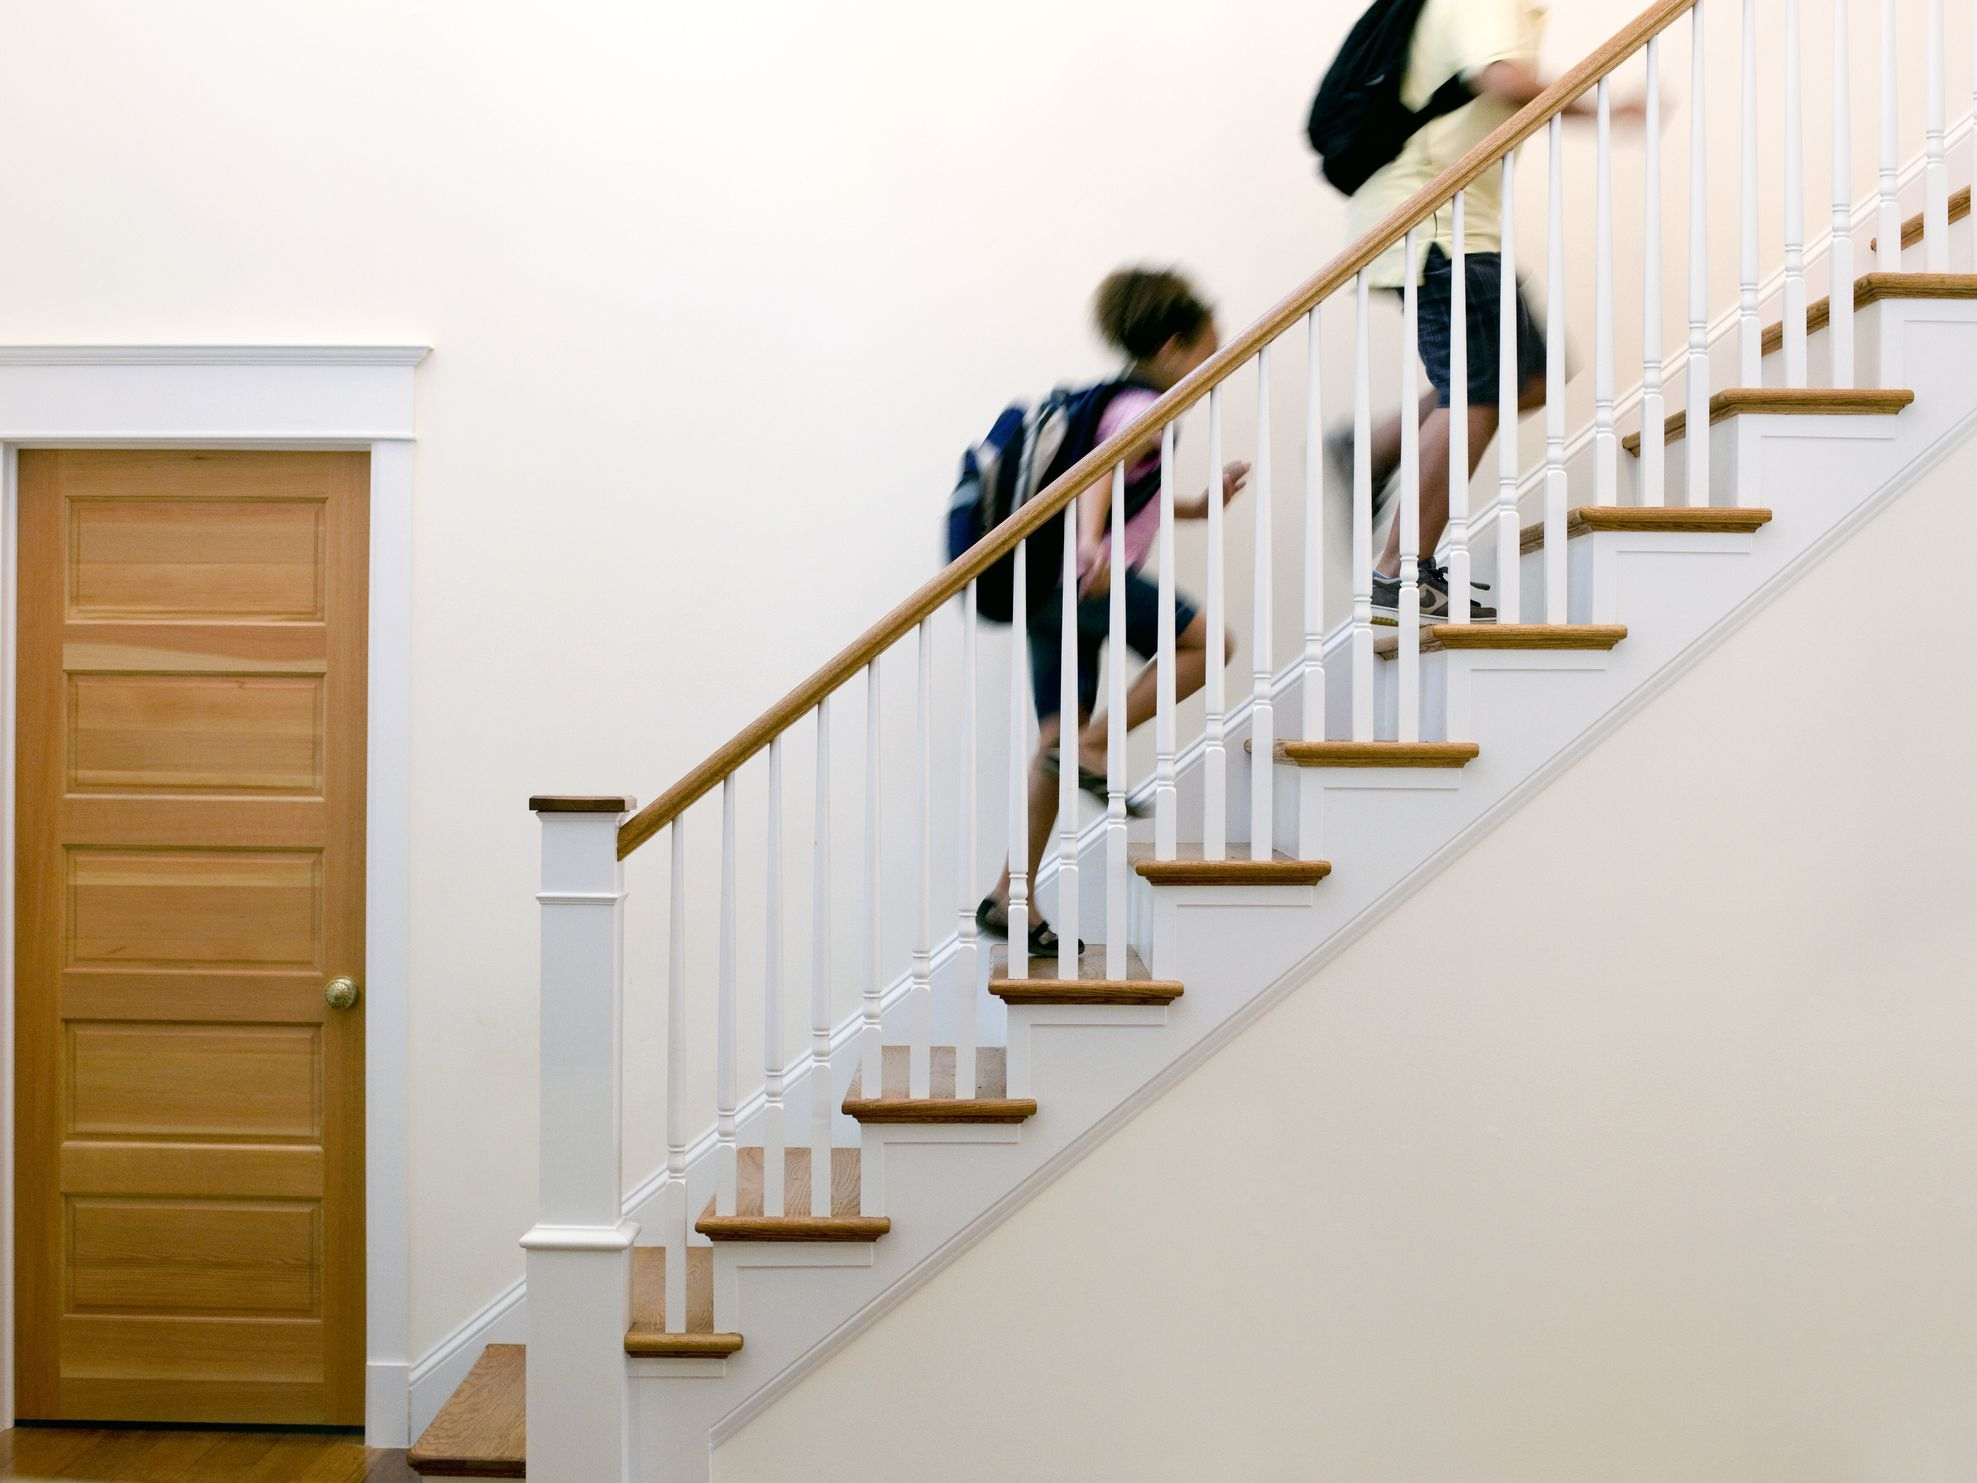 How To Install Stair Railing | Pre Made Stair Railings | Aluminum Railing | Wrought Iron Railing | Deck Railing | Cable Railing Systems | Metal